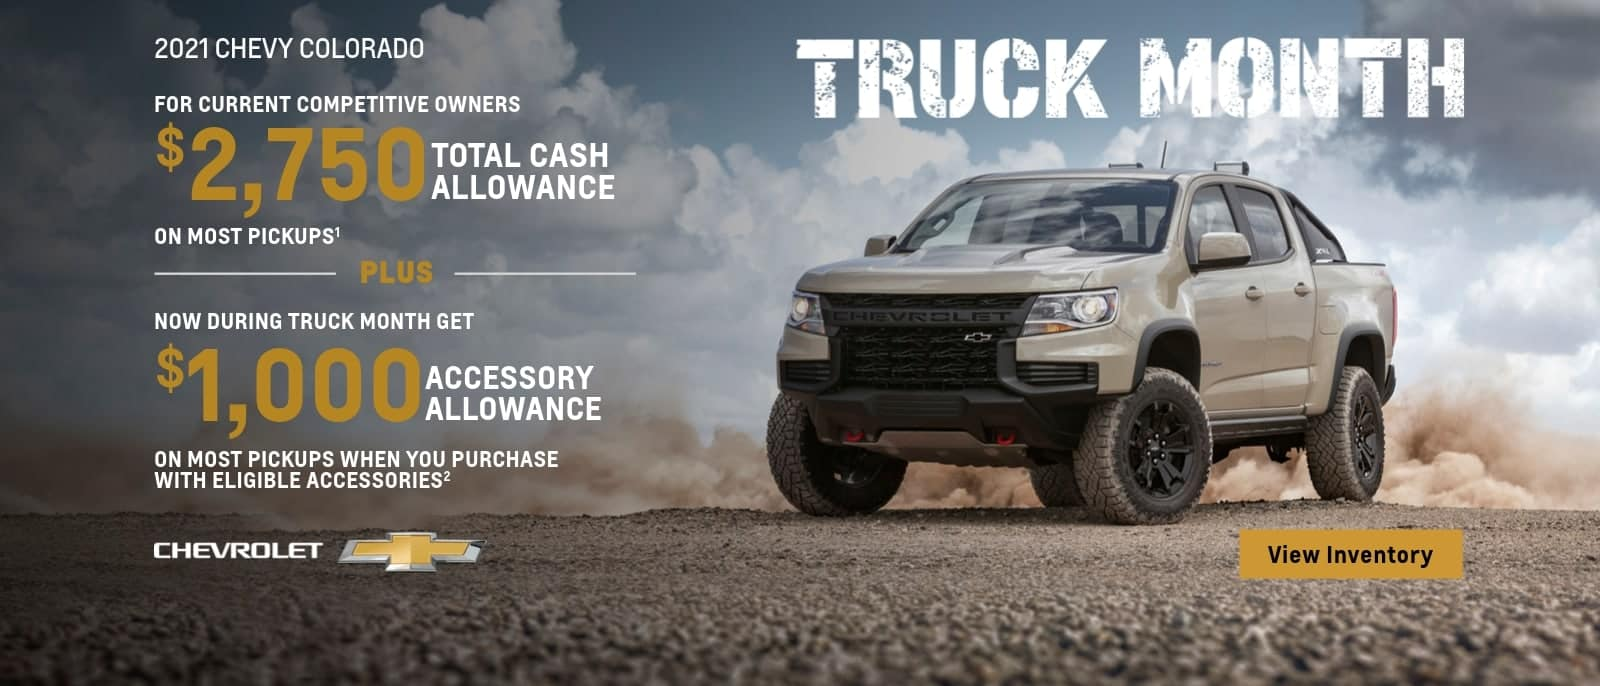 For current competitive owners $3,750 total cash allowance on most models plus now during truck month get $1,000 accessory allowance on most pickups when you purchase with eligible accessories.